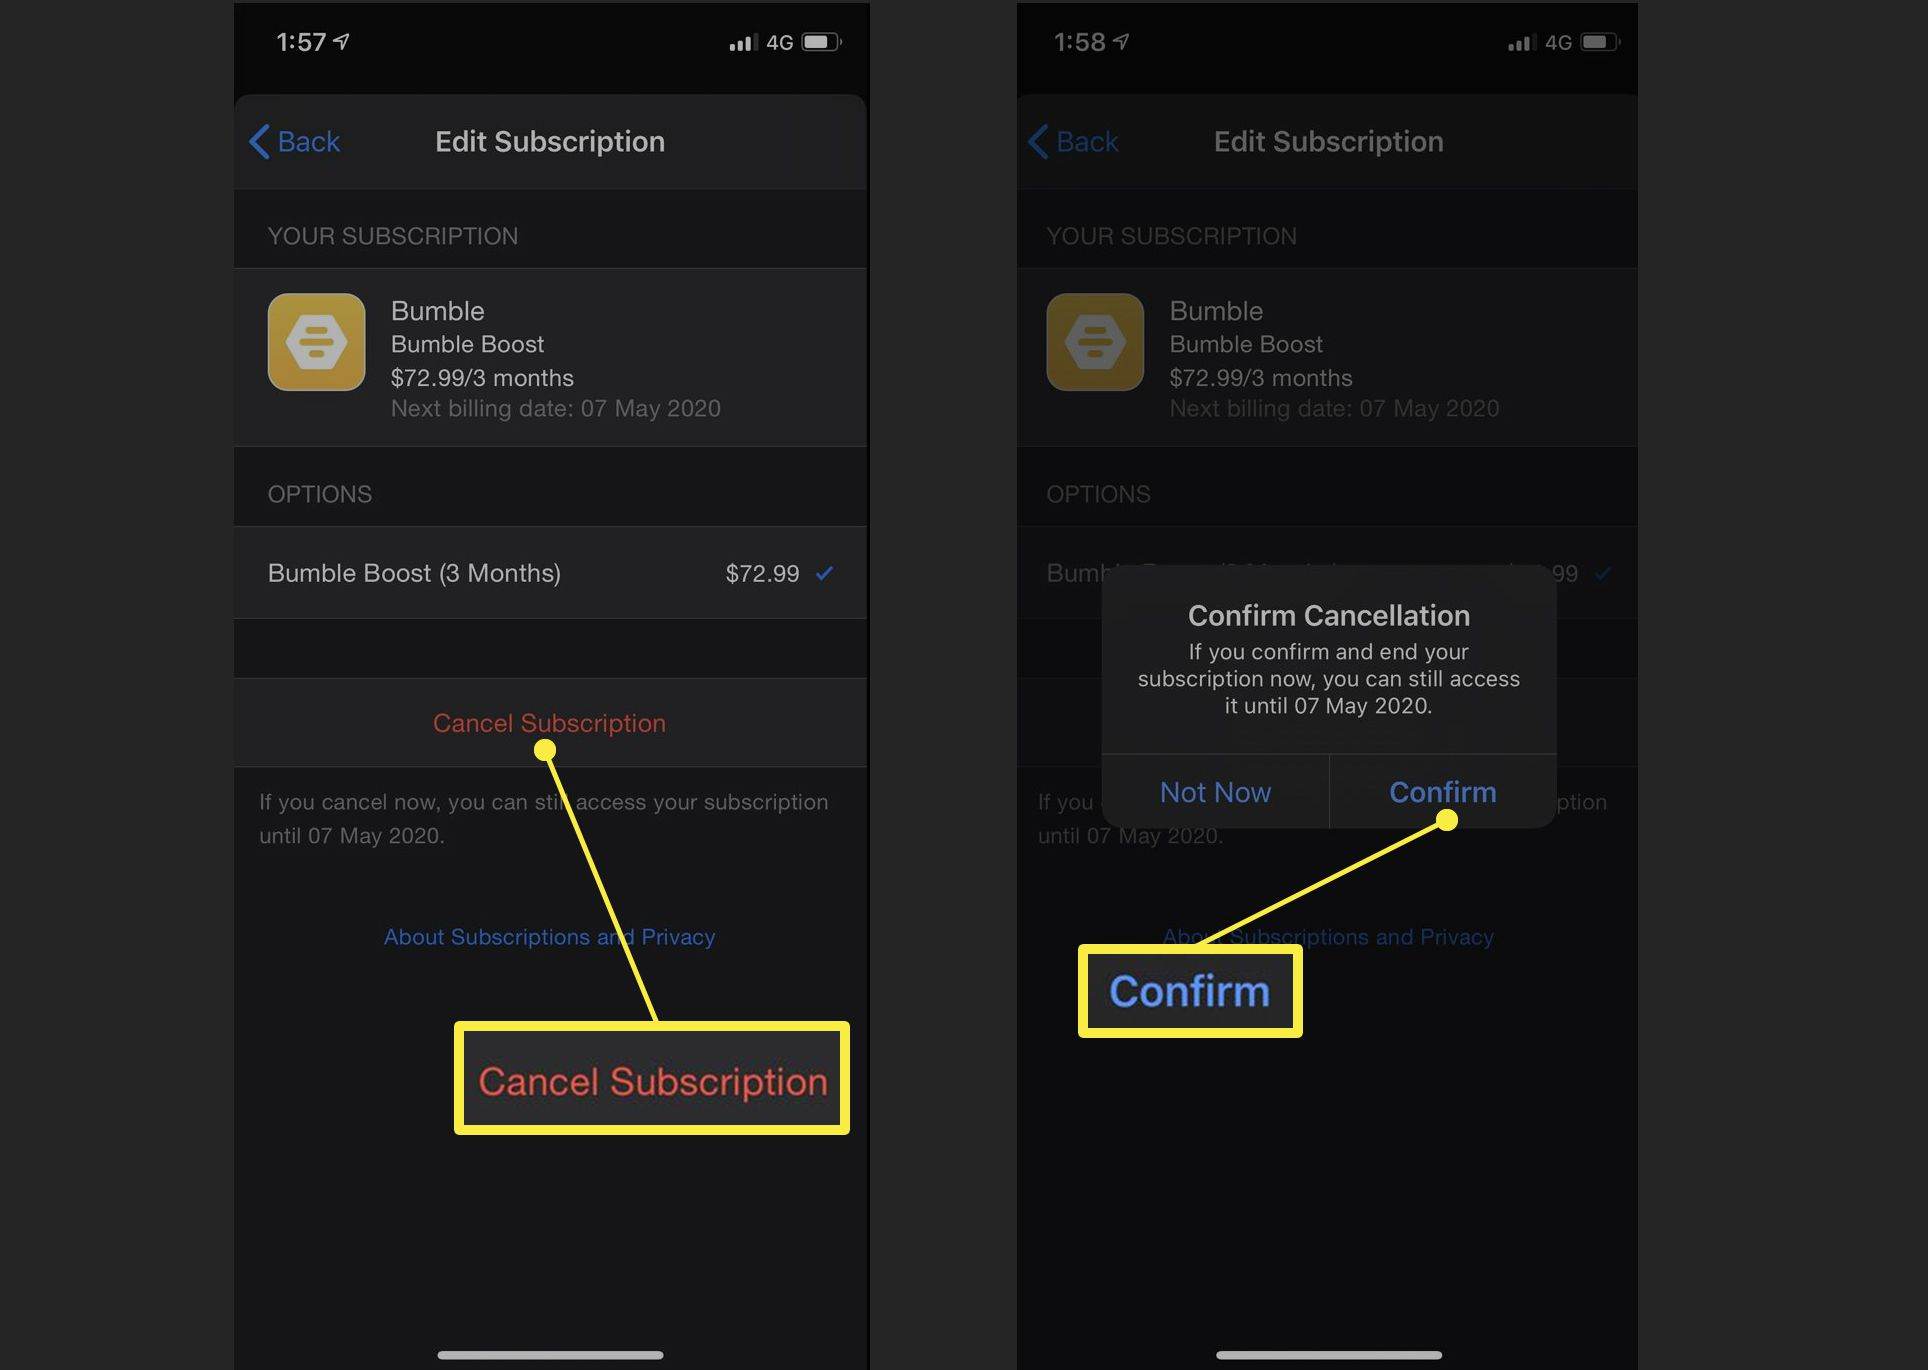 Cancel subscription screens on iPhone